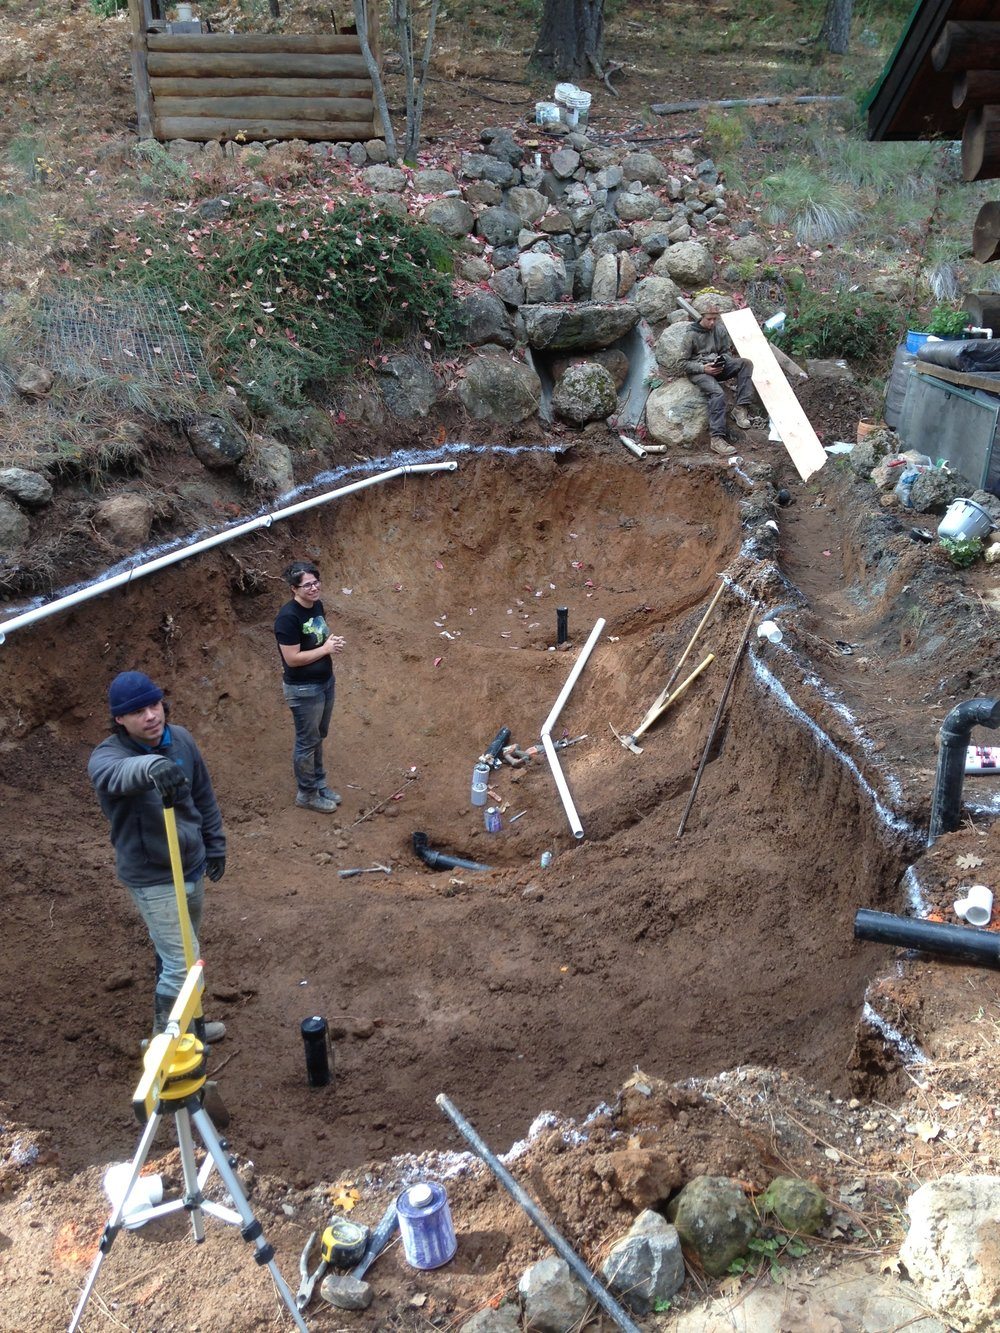 Zach Wollert and Shasta Krueger prepping the 10,000 gallon Koi pond and aquaponic garden for rebar intallation